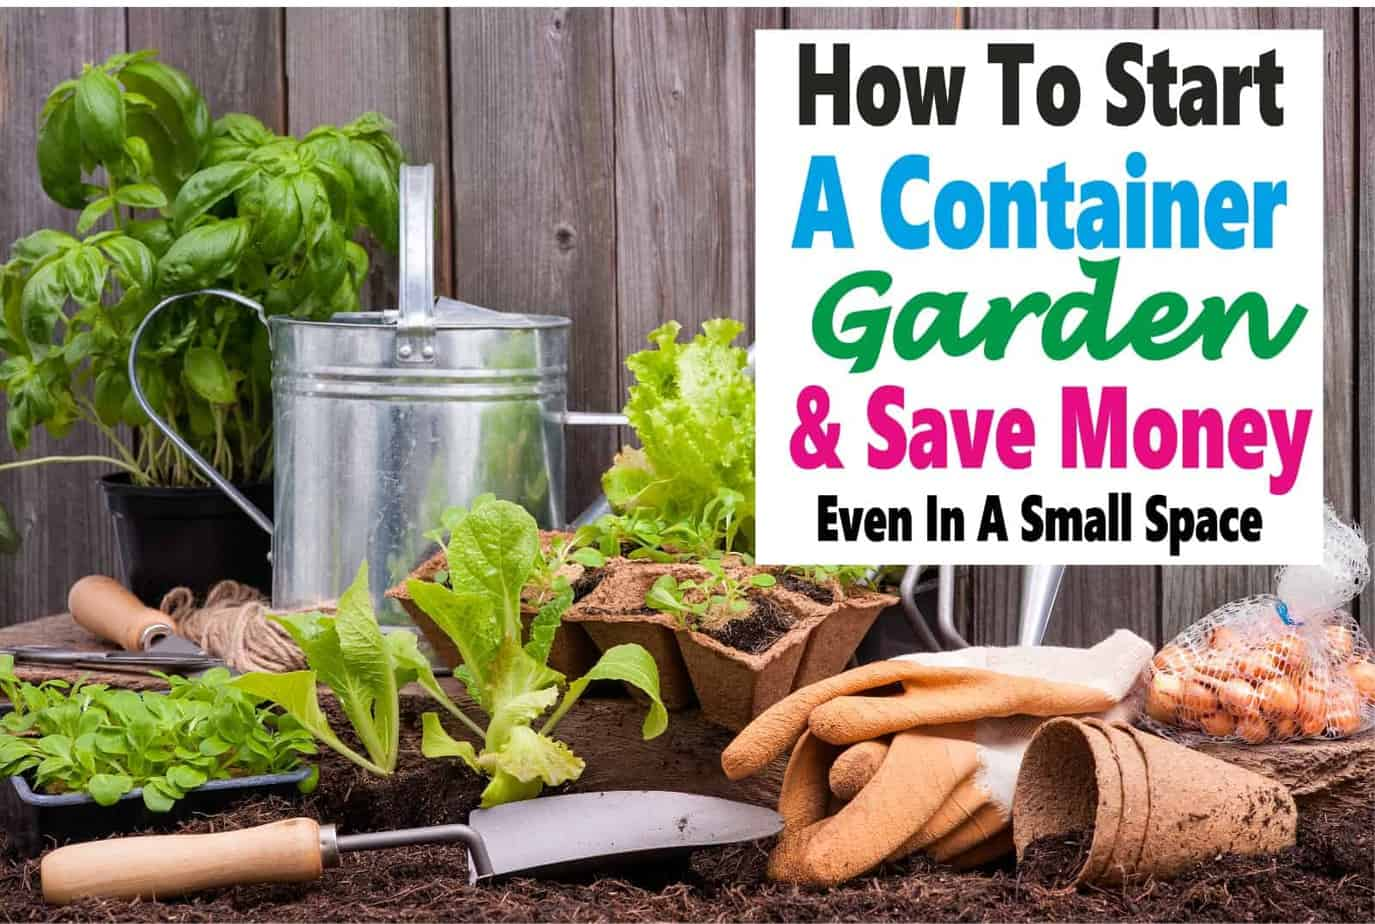 Container Gardening - A Clever Way to Save Money and Space ~ Gardening and growing your own food is a great way to save money and eat healthier for less & you don't need a huge space either. Read on to learn all the ins and outs of container gardening. garden | gardening | vegetables | save money | eat healthy | health #health #healthyeating #savemoney #garden #gardening #containergardening